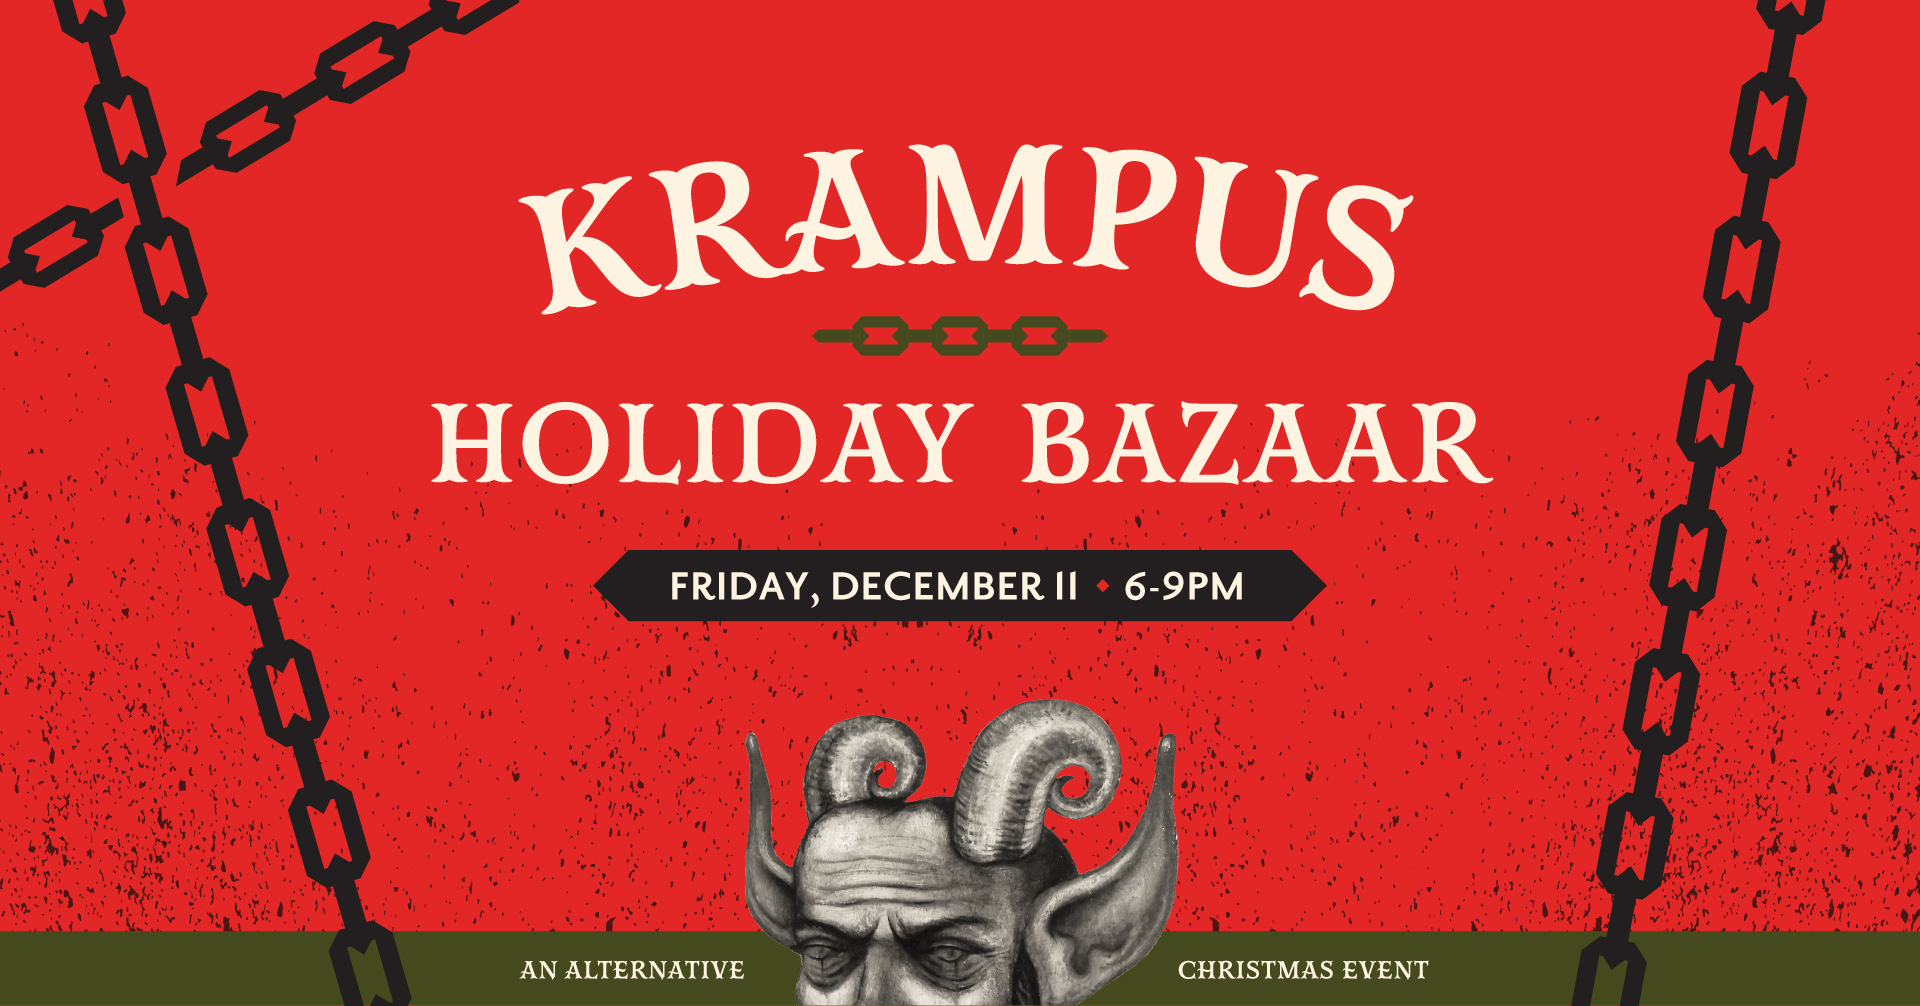 Krampus-Holiday-Bazaar_Header